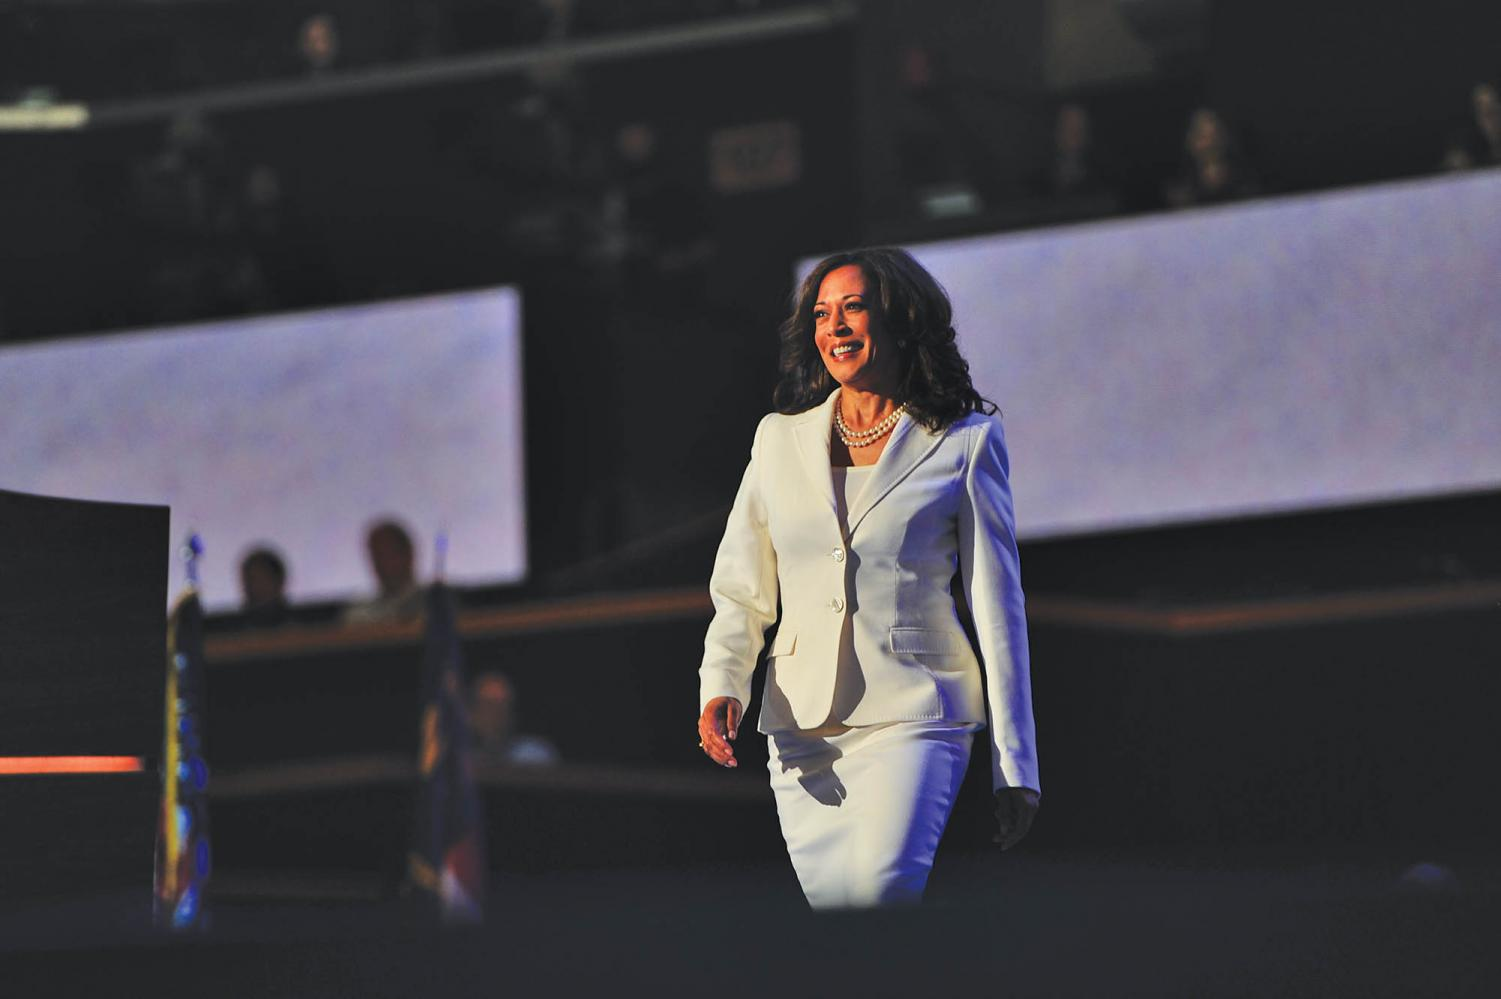 Harris announced her campaign as a presidential candidate on Jan. 27.